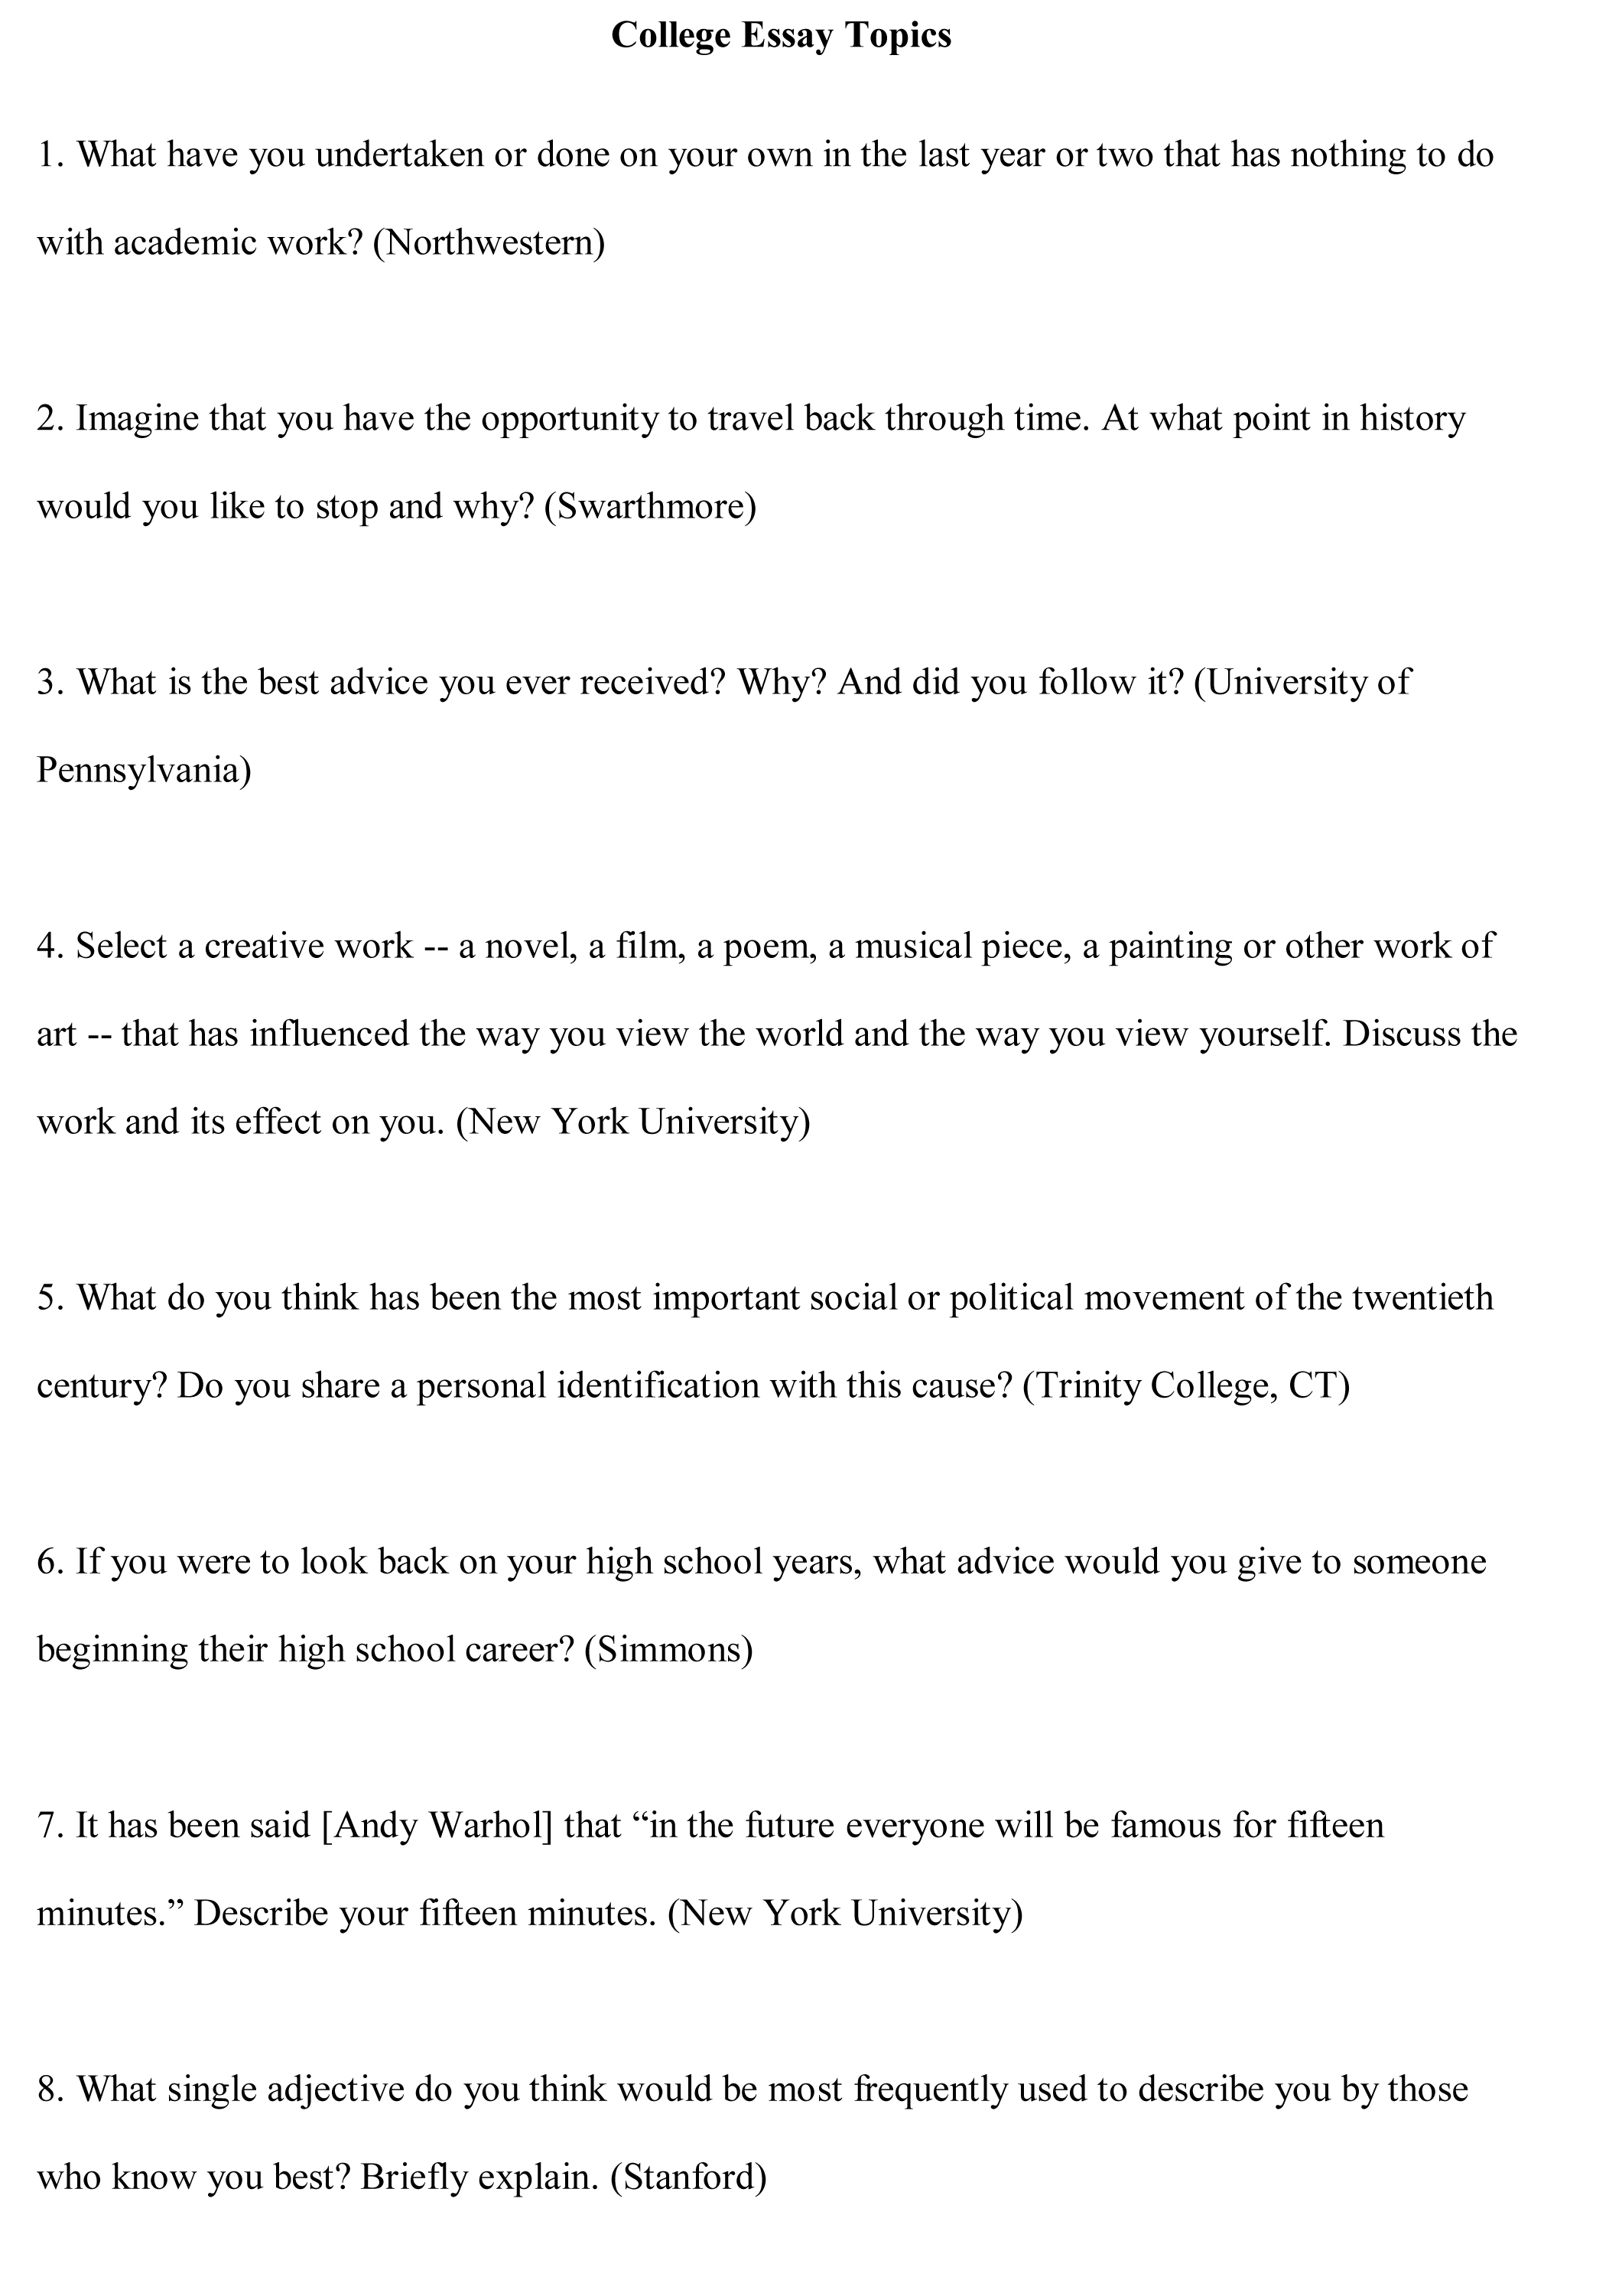 005 College Essay Questions Example Topics Free Frightening Crazy Application Harvard Prompts 2017 Mit Prompt Full